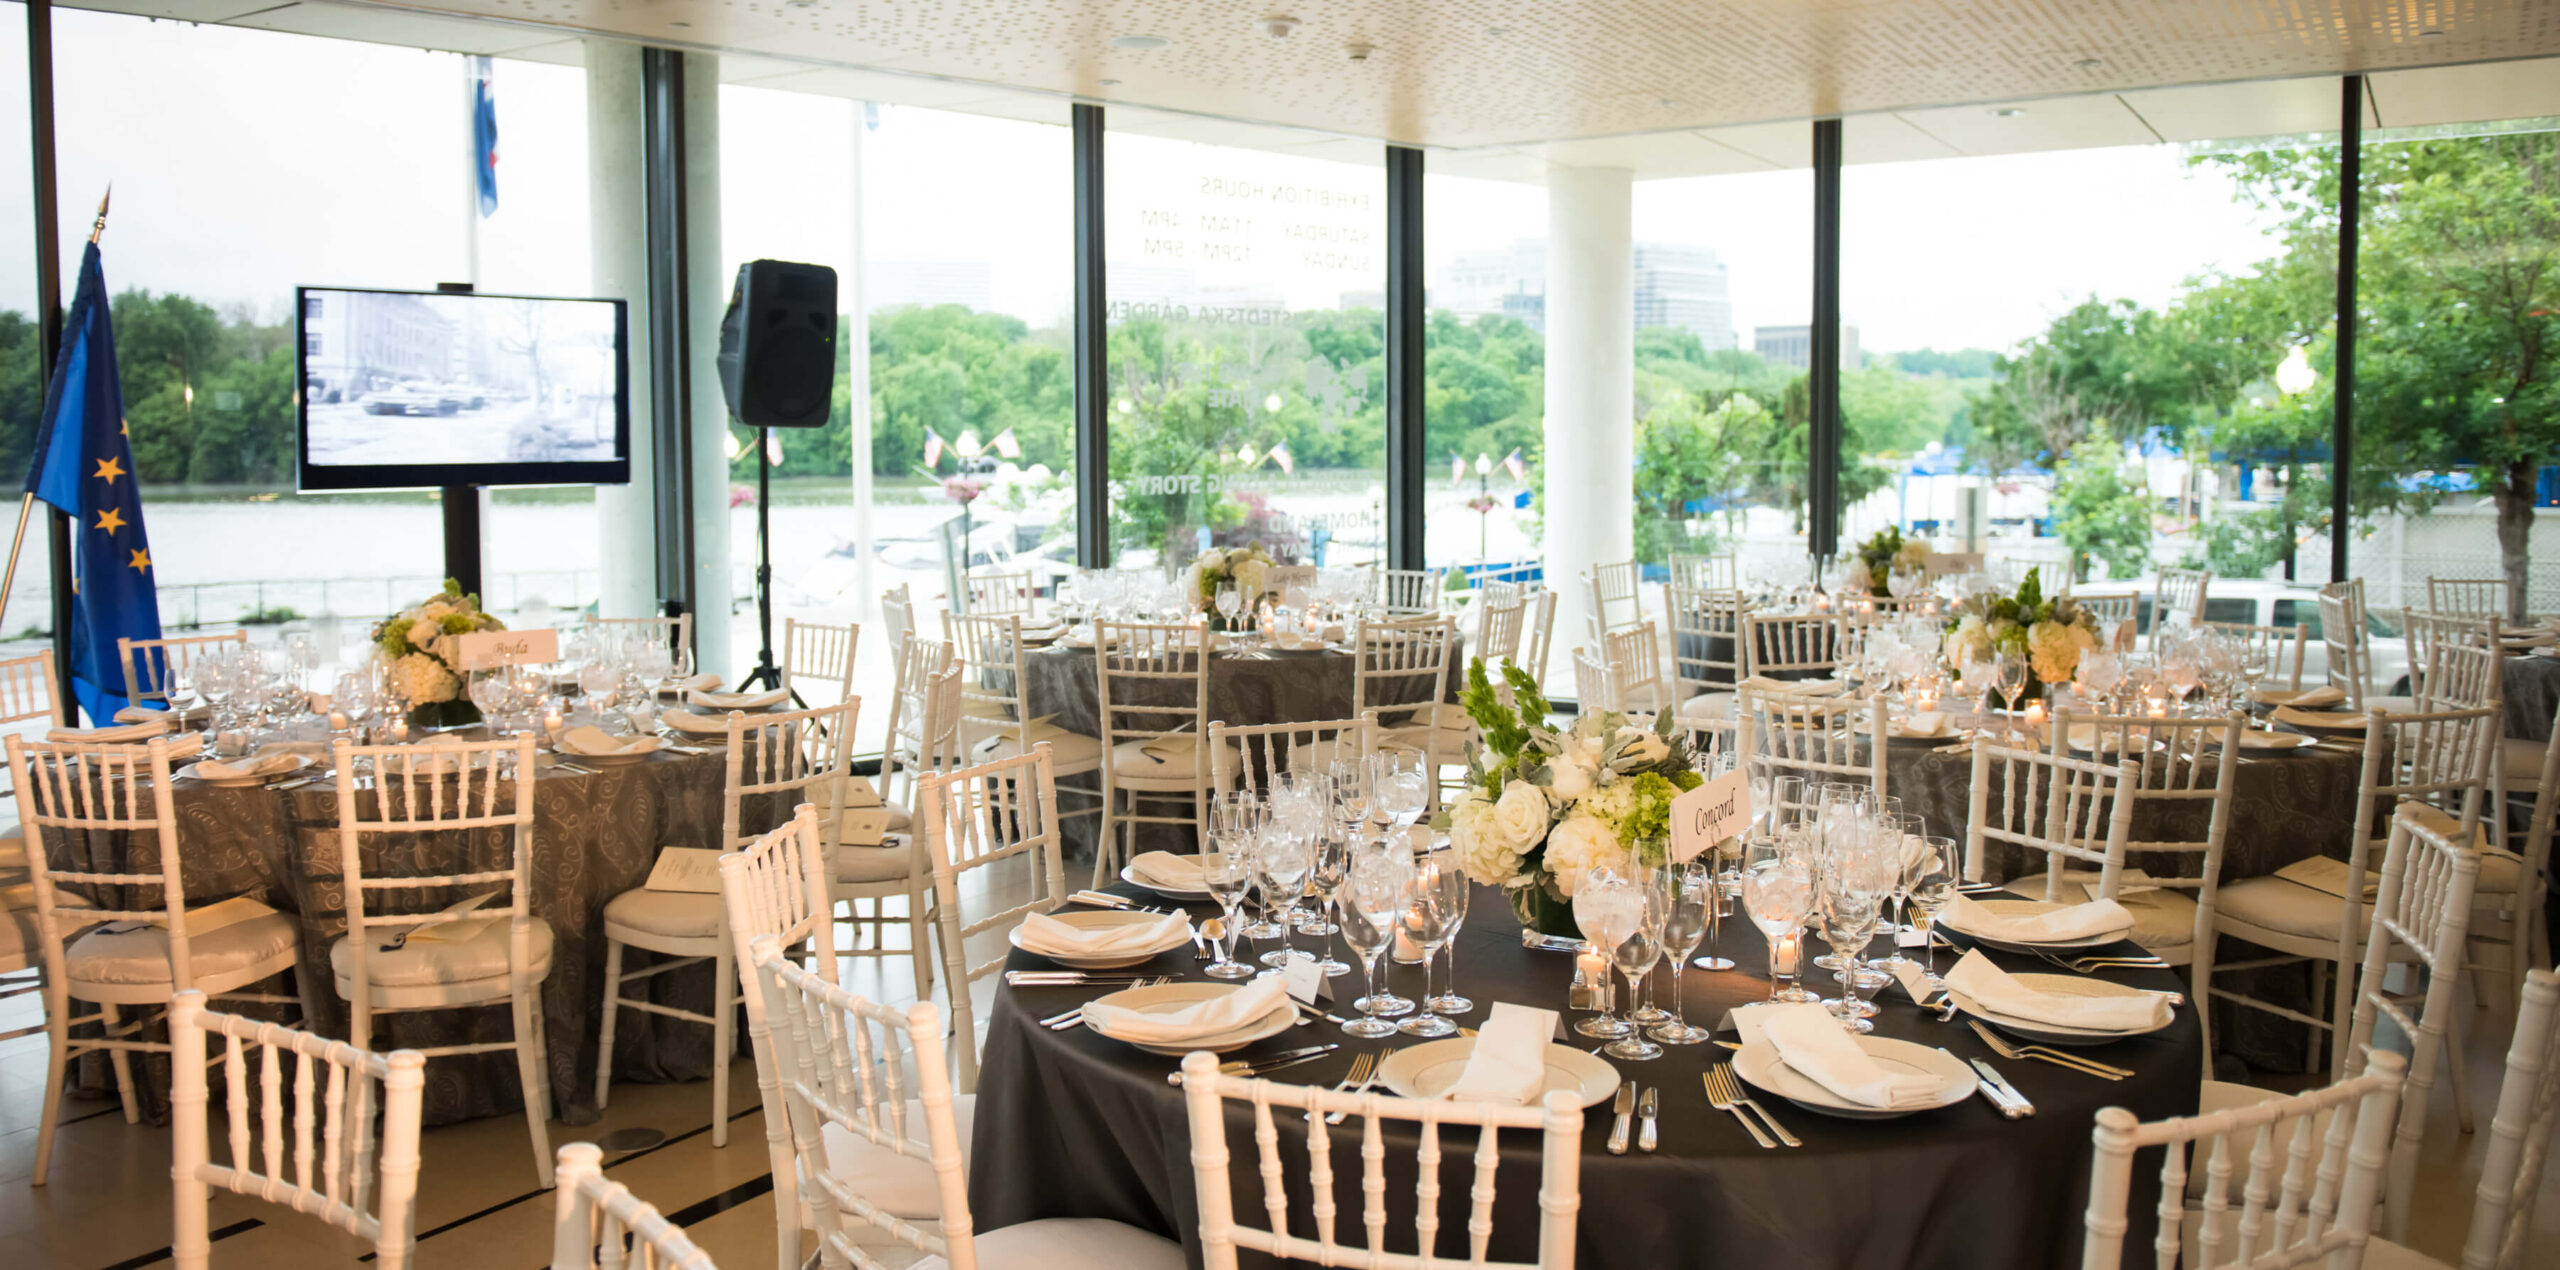 Gala Dinner 2014 at the House of Sweden in Washington, DC